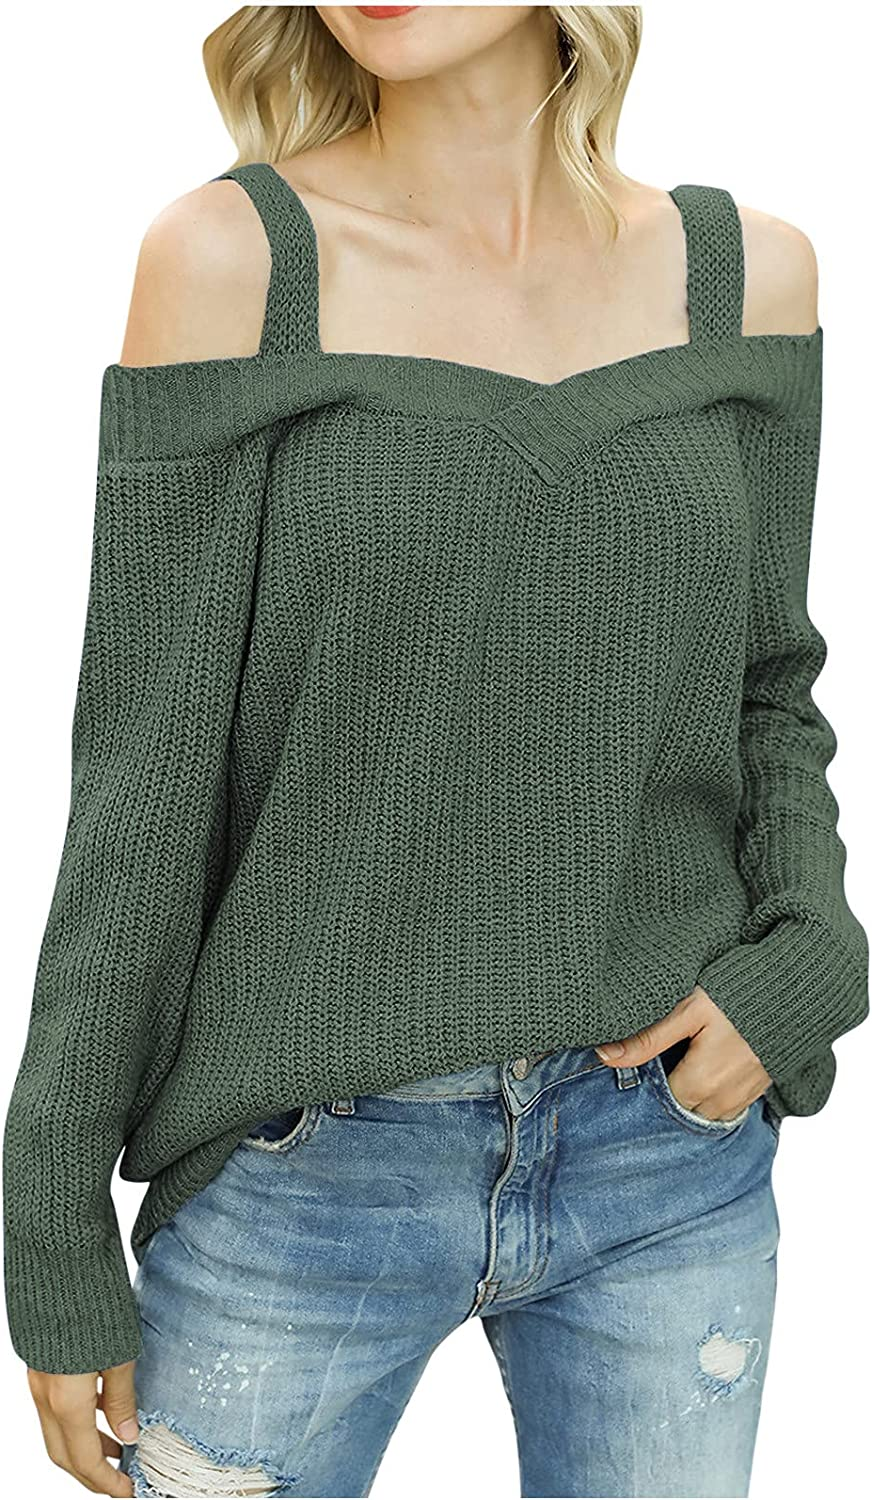 JIANGZHo Long Sleeve Cold Shoulder Sweater Tops for Women Sexy V Neck Halter Knitted Pullover Sweater Shirts Tunic Tops